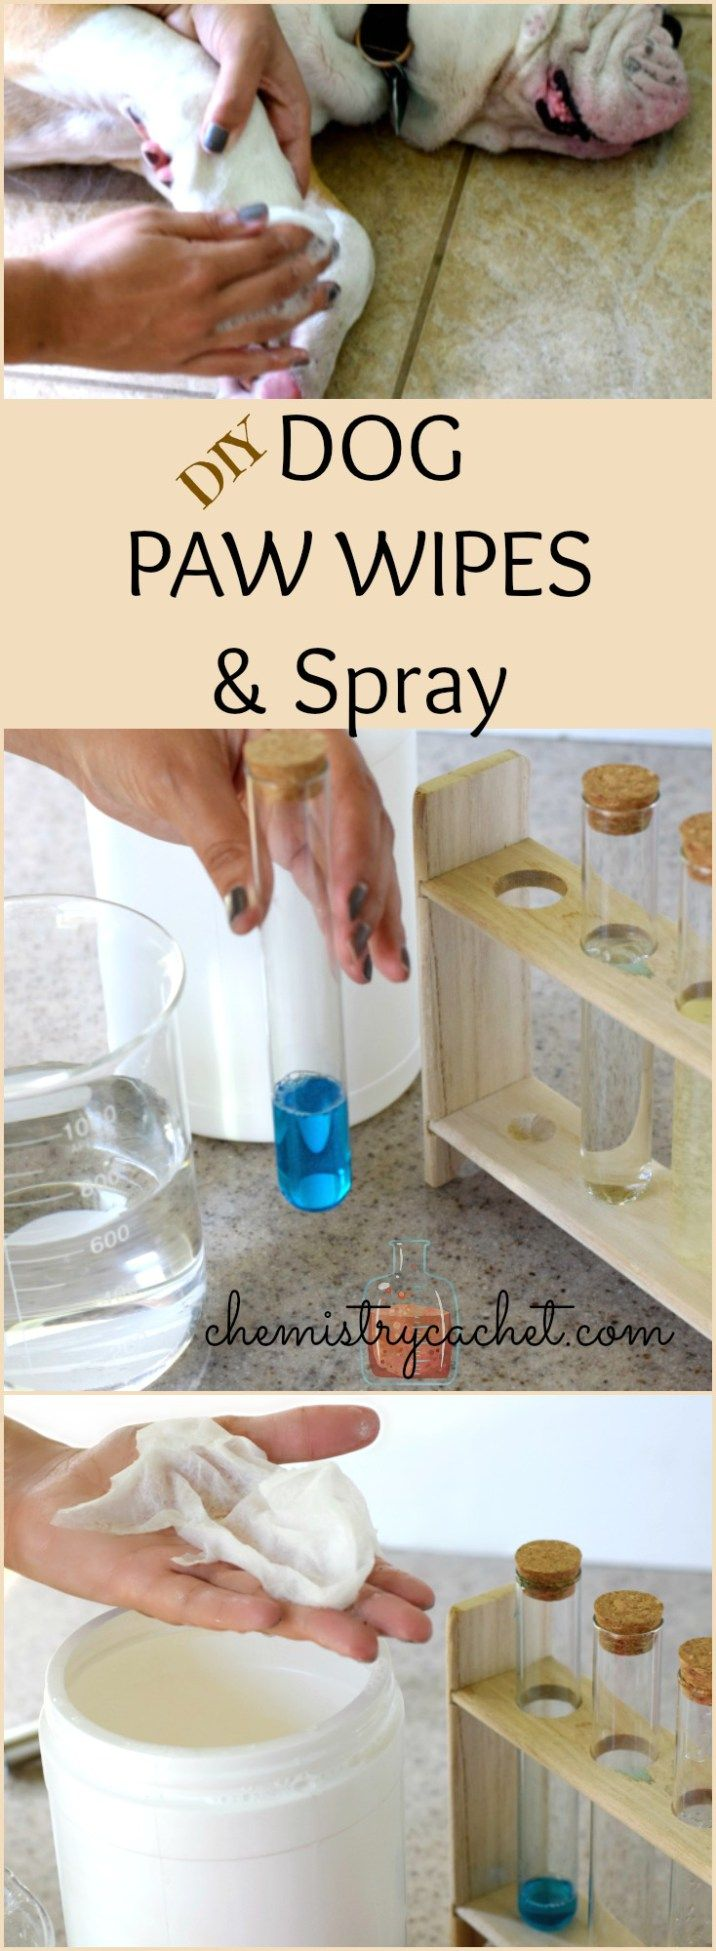 DIY Dog Paw Wipes & Spray. Only a few simple ingredients that cleans, soothes, and disinfects. Just a few pennies per batch! See video on chemistrycachet.com